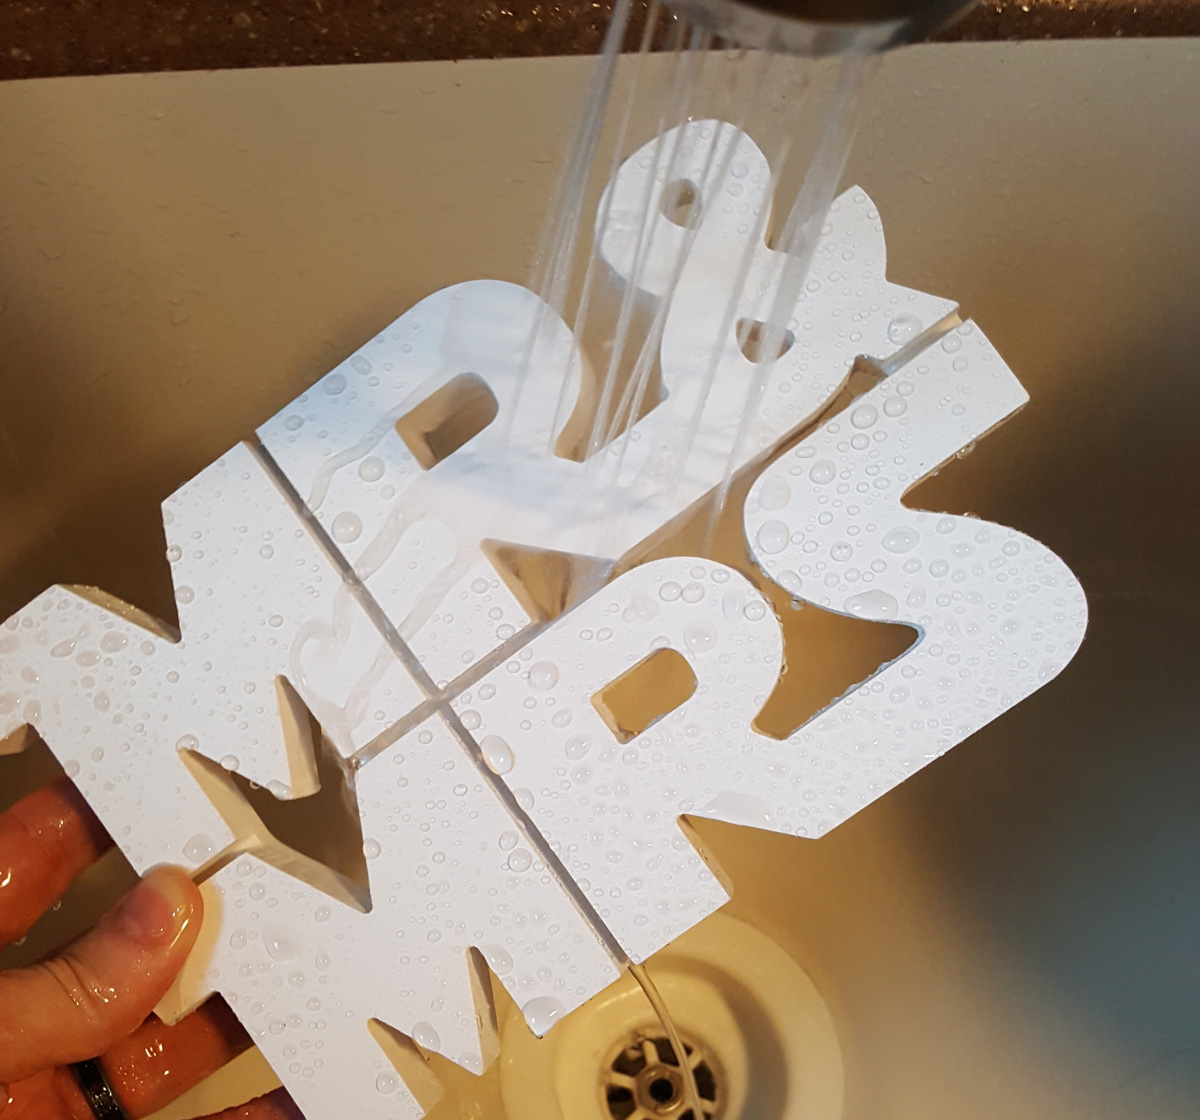 Mr & Mrs Star Wars Font Wedding Table Centerpiece